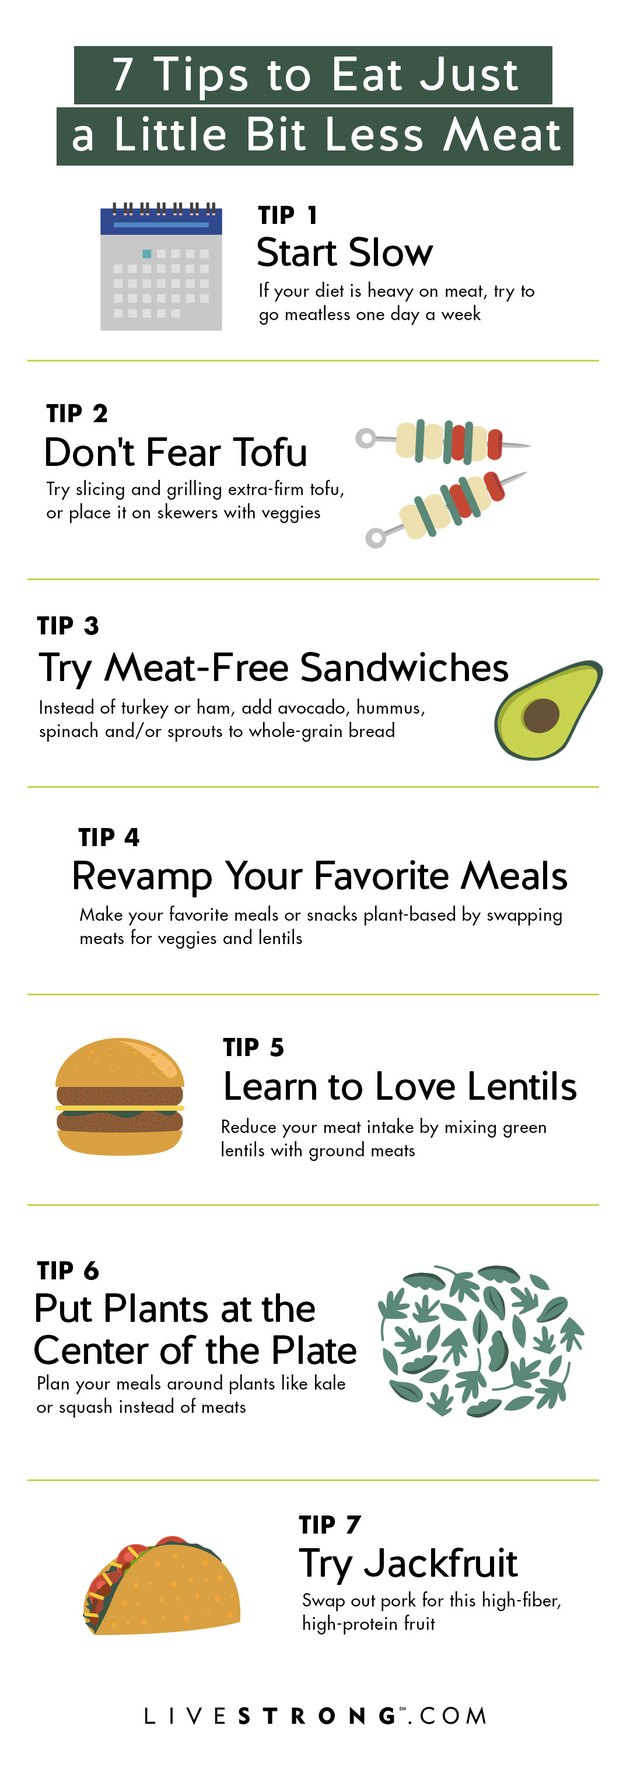 tips to eat less meat graphic